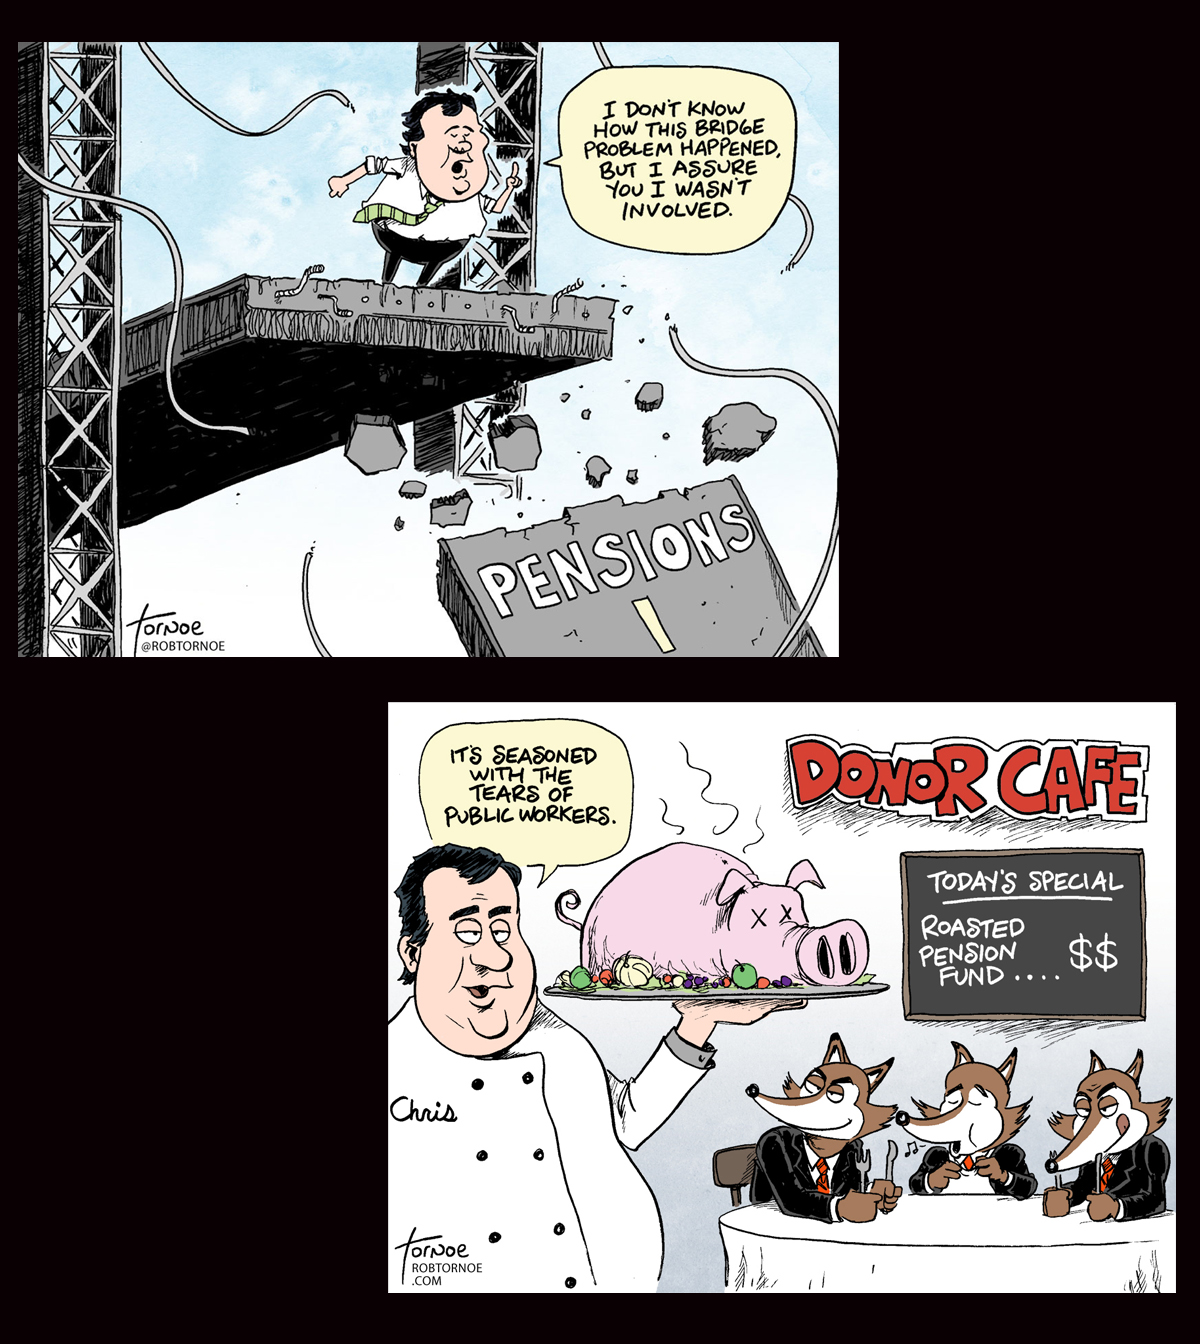 20150313 two cartoons on pensions 1200